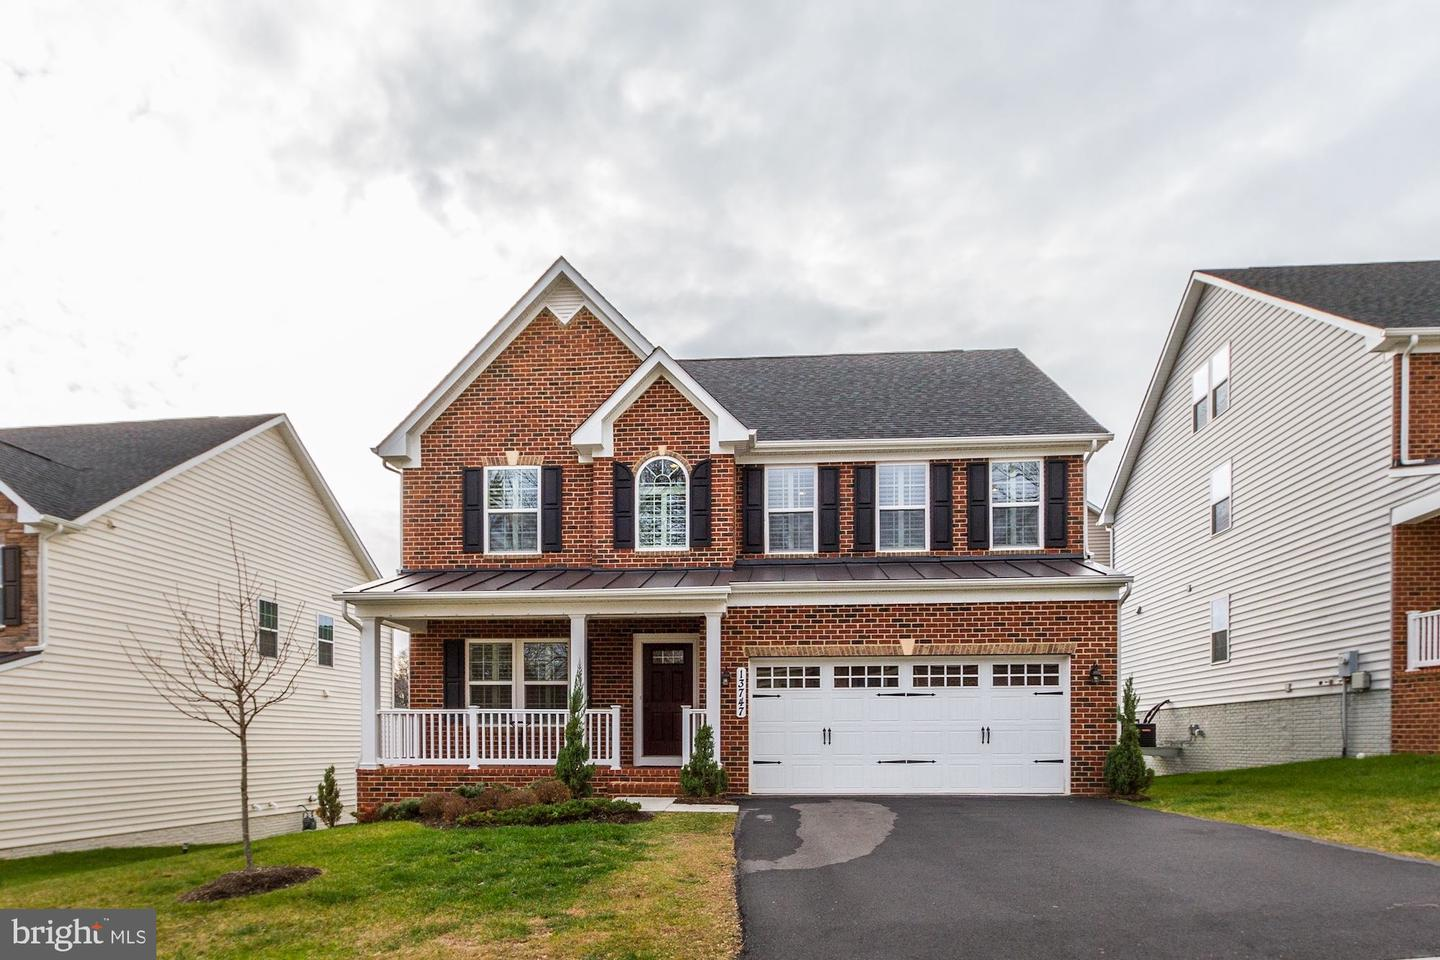 13747 SOARING WING LANE, SILVER SPRING, Maryland